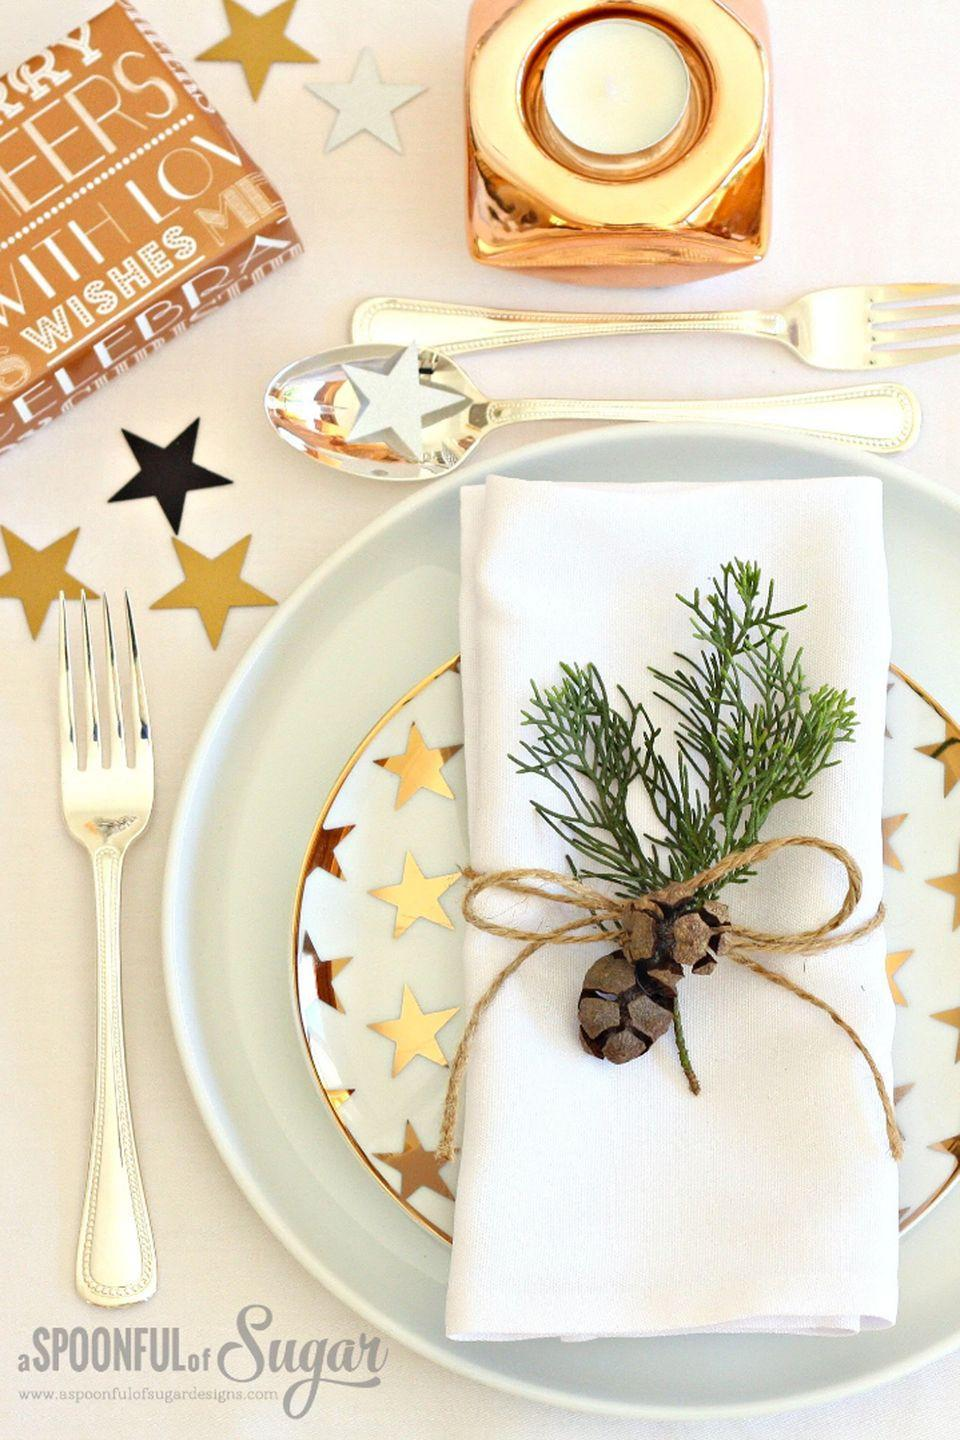 "<p>Subtle touches are something to celebrate—they add festive charm to your table, and these are no exception. Use a craft punch to cut out stars and scatter them around your plate settings.</p><p><strong>Get the tutorial at <a href=""http://aspoonfulofsugardesigns.com/2015/12/10-simple-christmas-table-ideas/"" rel=""nofollow noopener"" target=""_blank"" data-ylk=""slk:A Spoonful of Sugar"" class=""link rapid-noclick-resp"">A Spoonful of Sugar</a>. </strong></p><p><strong><a class=""link rapid-noclick-resp"" href=""https://www.amazon.com/Fiskars-Corporation-Star-Punch-23537097J/dp/B071XGD7YC/?tag=syn-yahoo-20&ascsubtag=%5Bartid%7C10050.g.644%5Bsrc%7Cyahoo-us"" rel=""nofollow noopener"" target=""_blank"" data-ylk=""slk:SHOP STAR PUNCH"">SHOP STAR PUNCH</a></strong></p>"